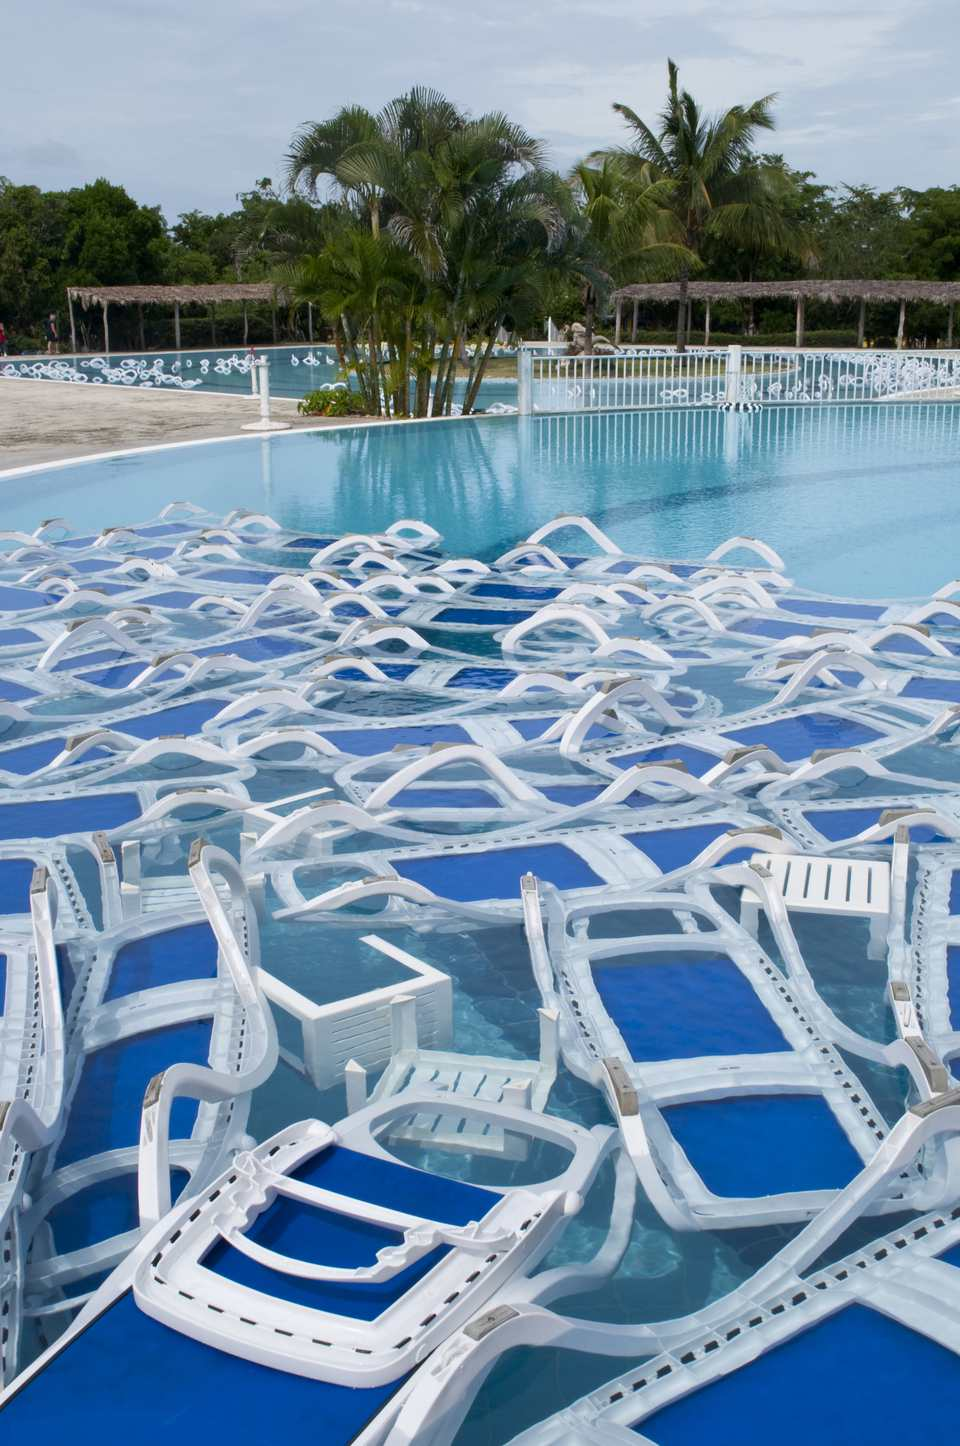 Plastic chairs in a pool